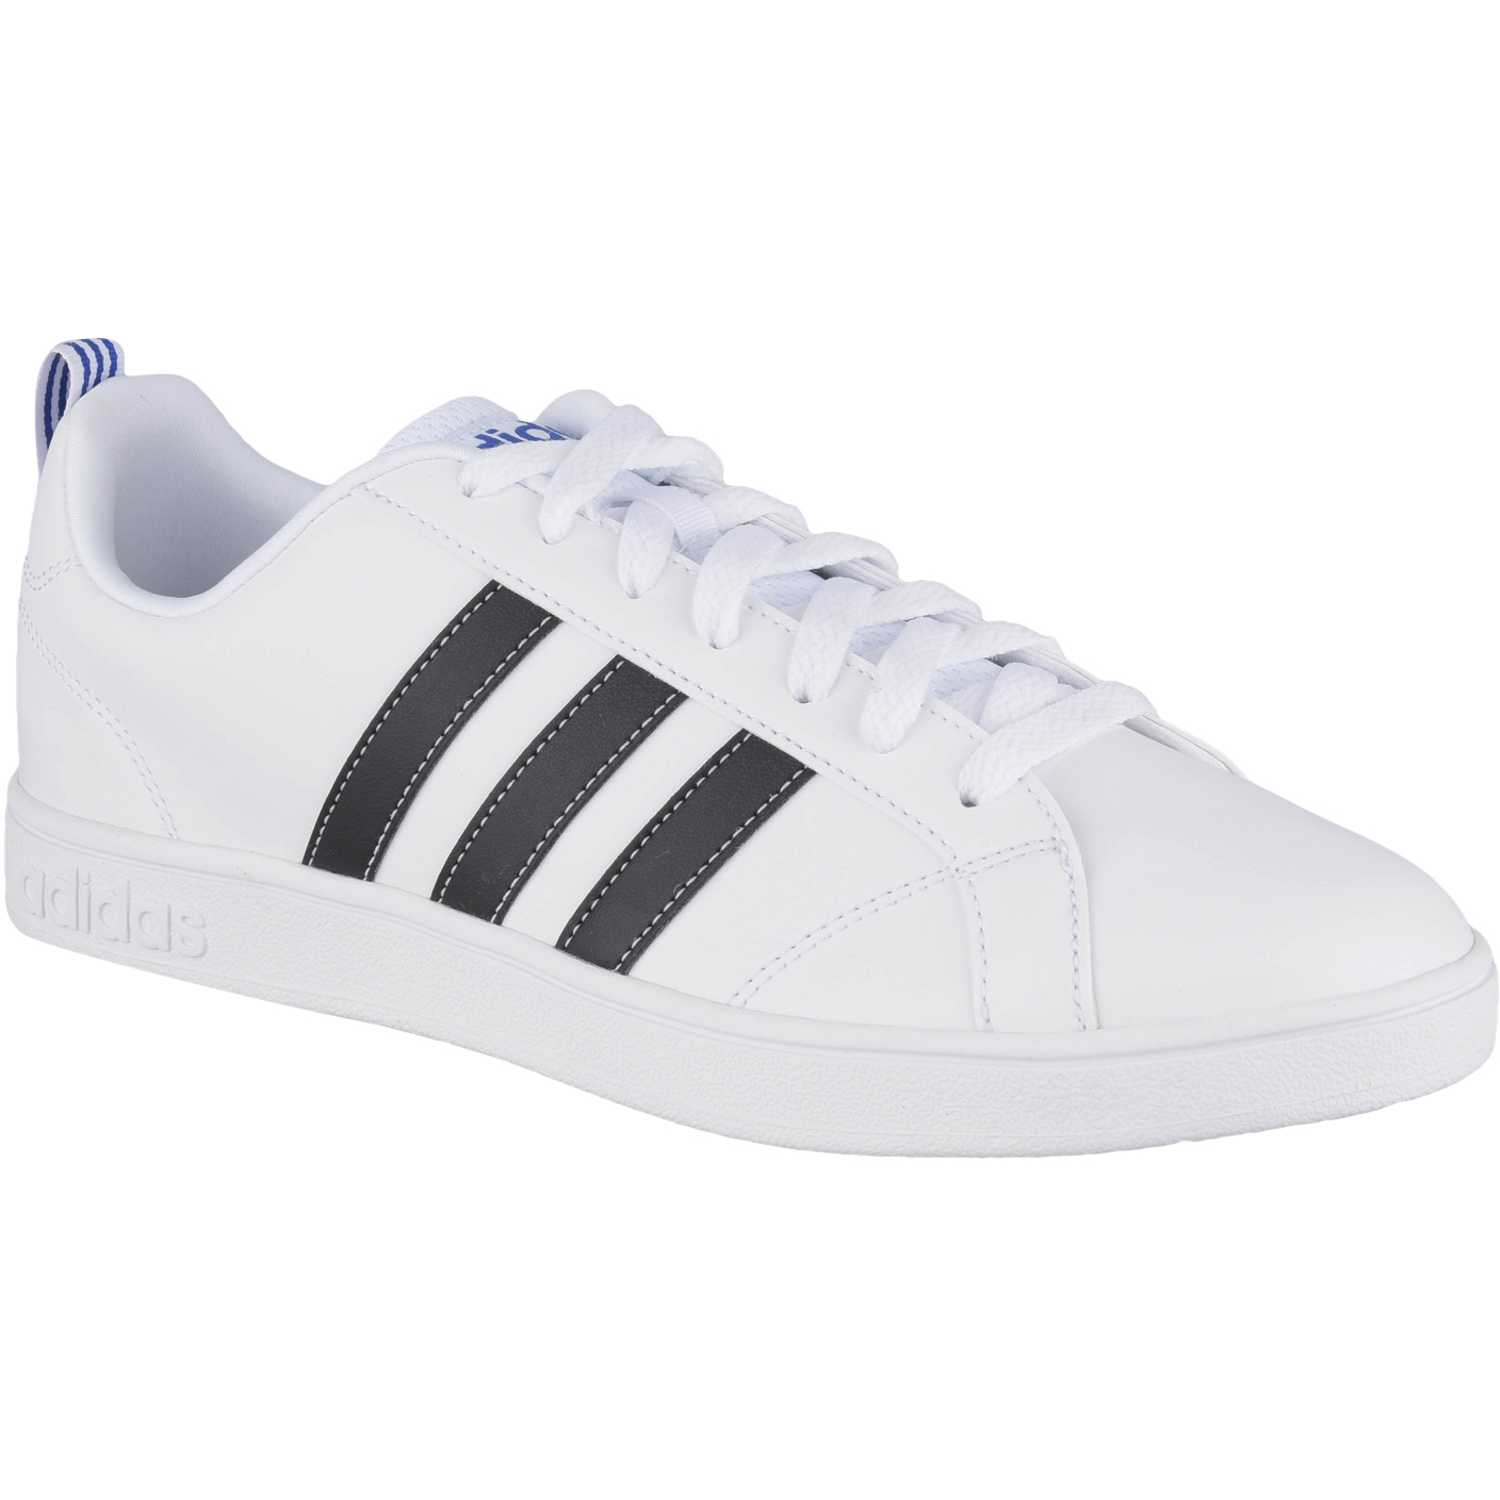 the latest 3d7ff 3c1cf ... purchase zapatilla de hombre adidas neo blanco negro vs advantage d8ff4  4b7c9